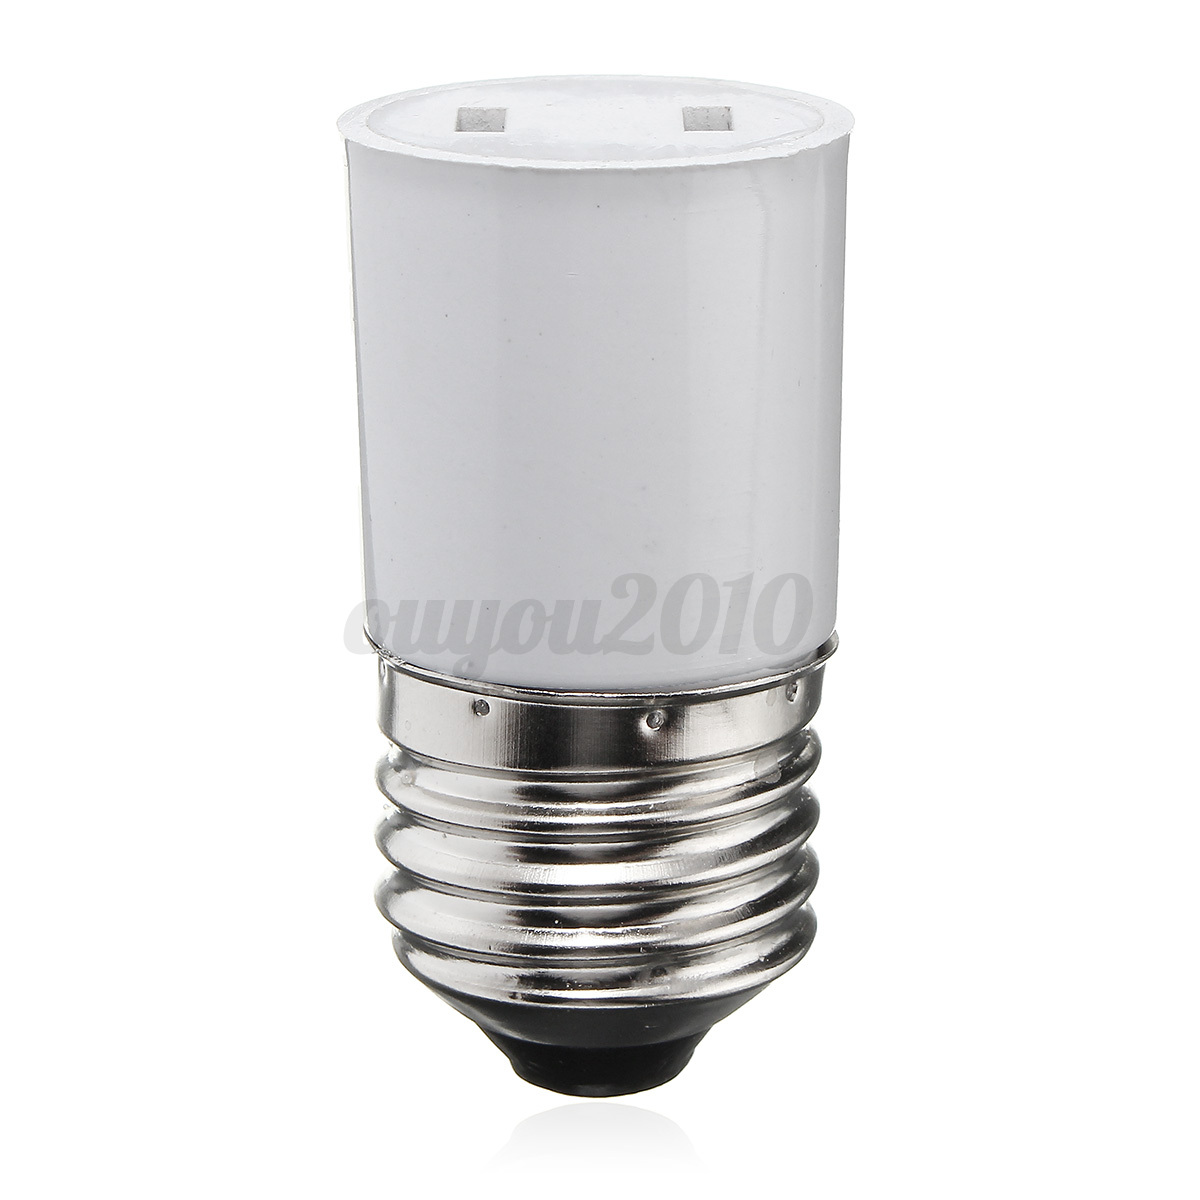 E27 E14 B22 B15d Lamp Bulb Adapter Socket Holder Convert To Us Eu Power Female Outlet B22 E27 Light Lamp Bulb Socket Holder Convert To Us Power